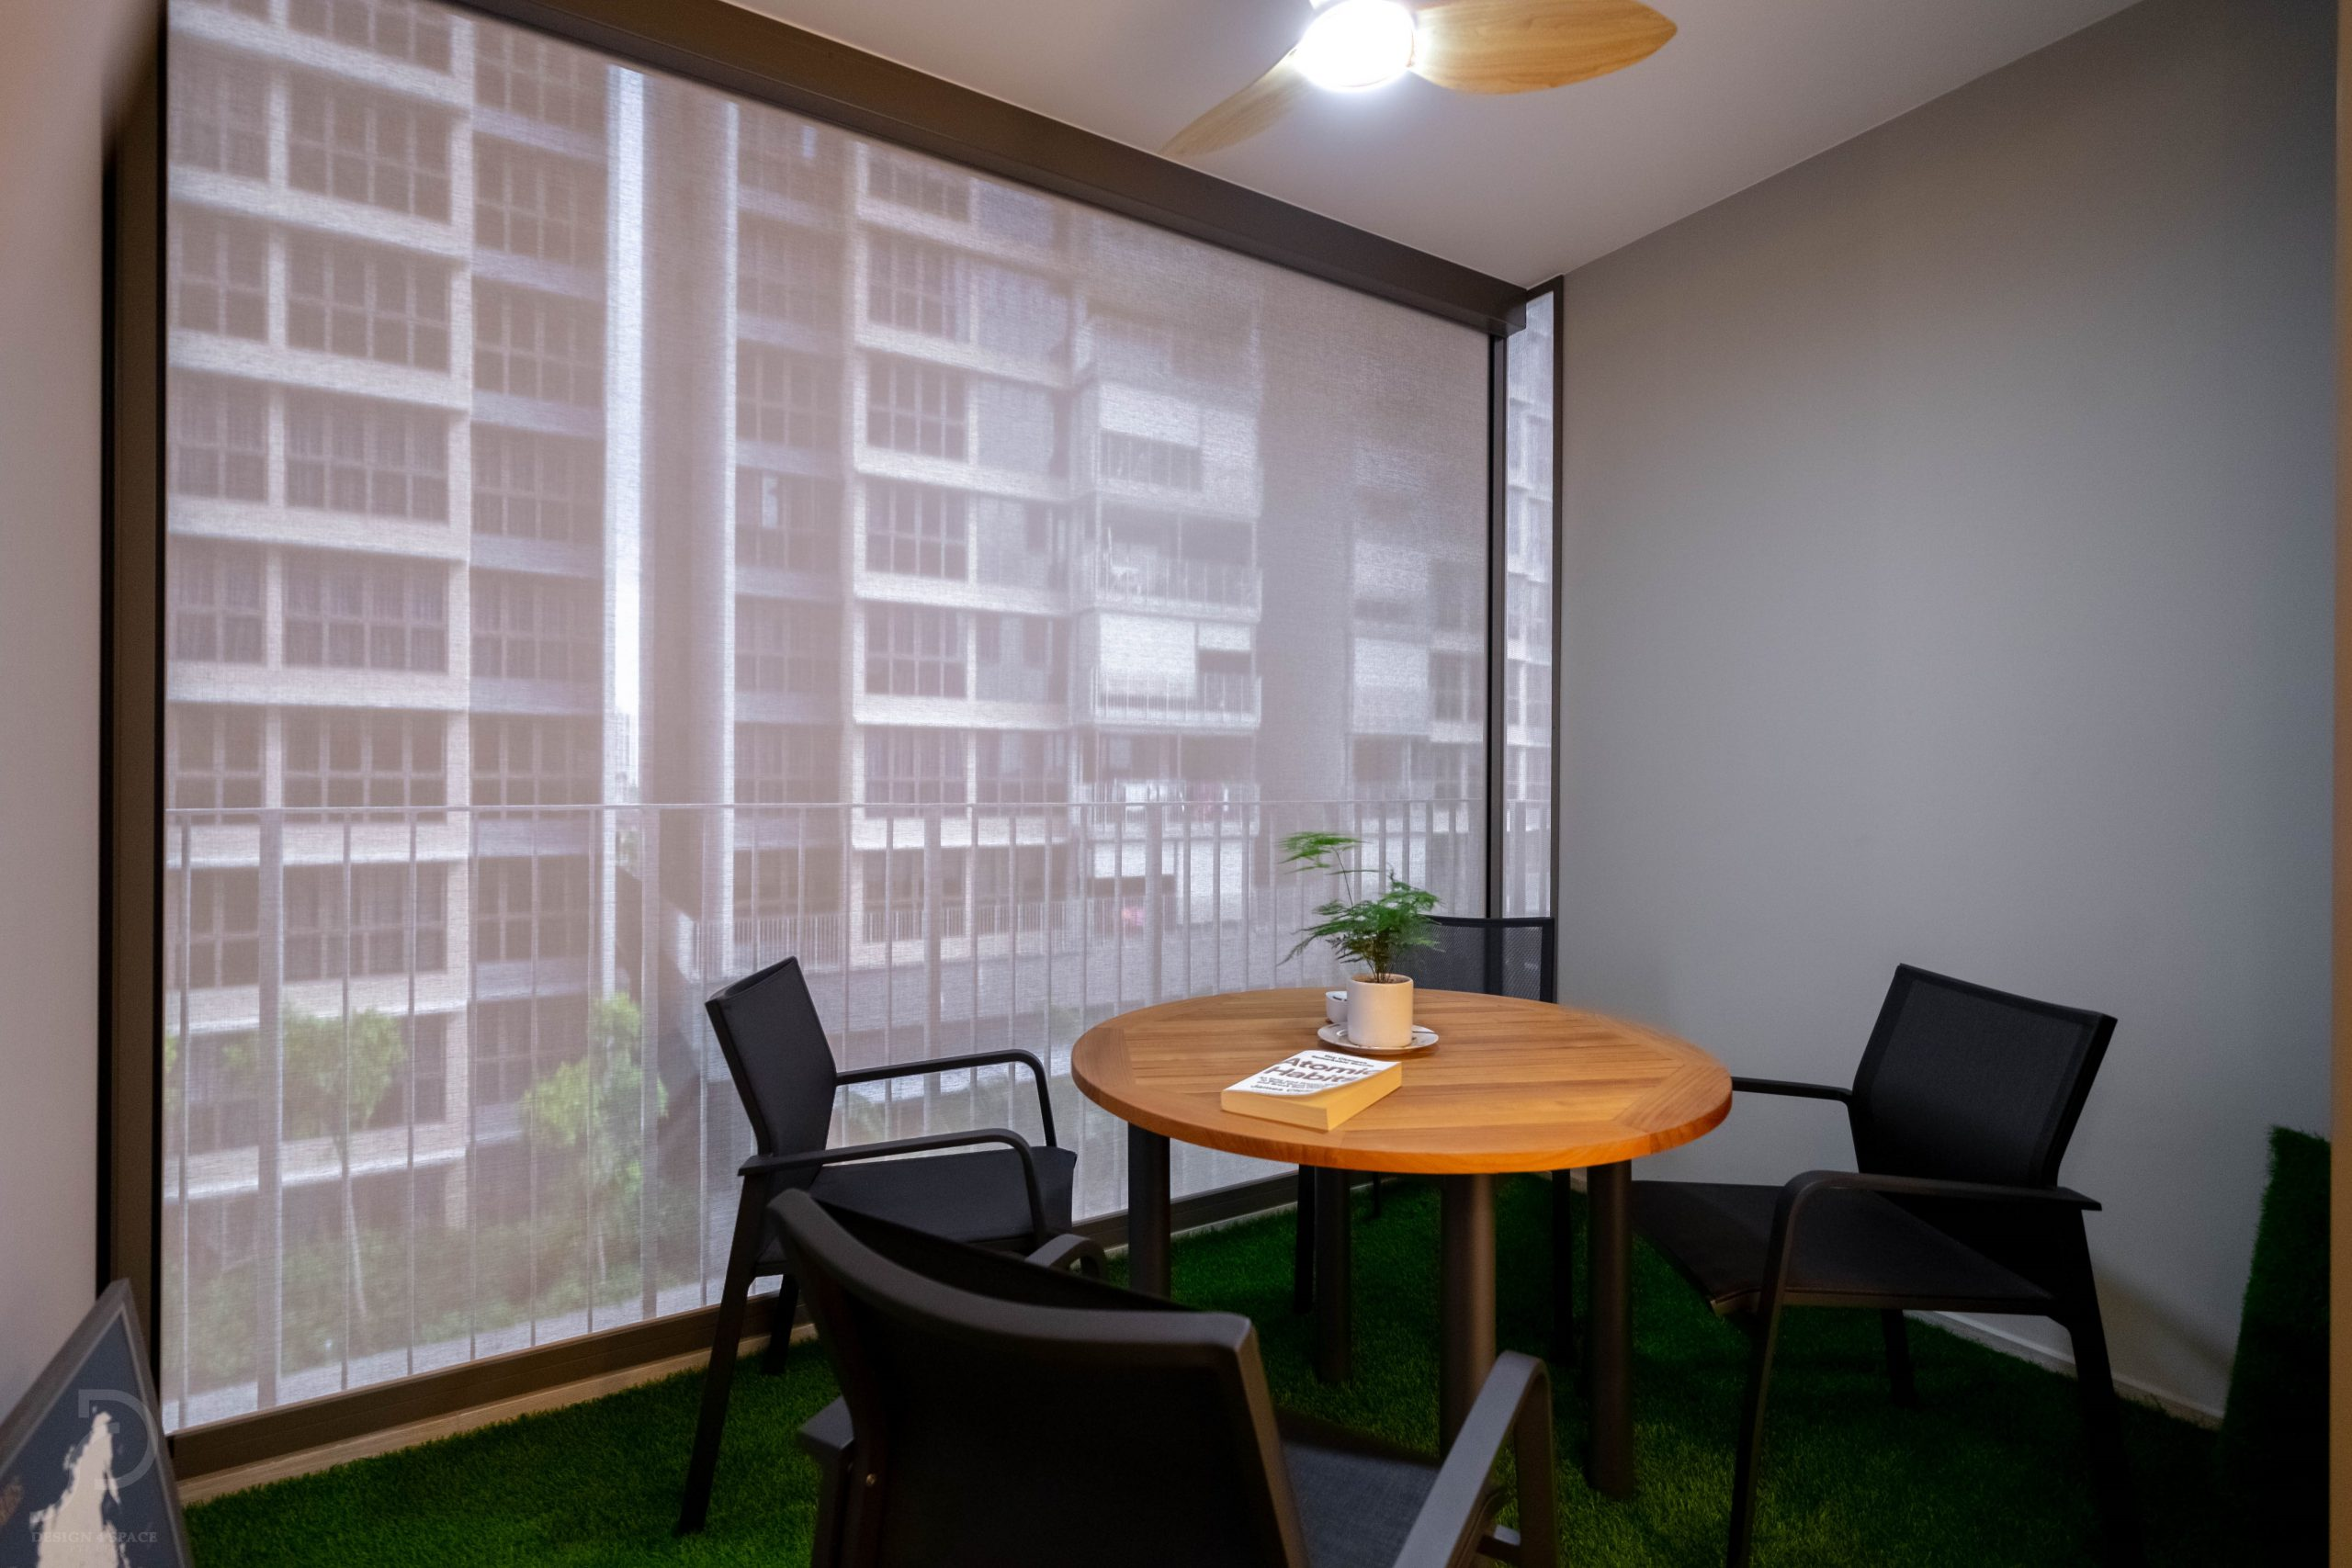 357 - rivercove residence - vincent - mid res watermark1